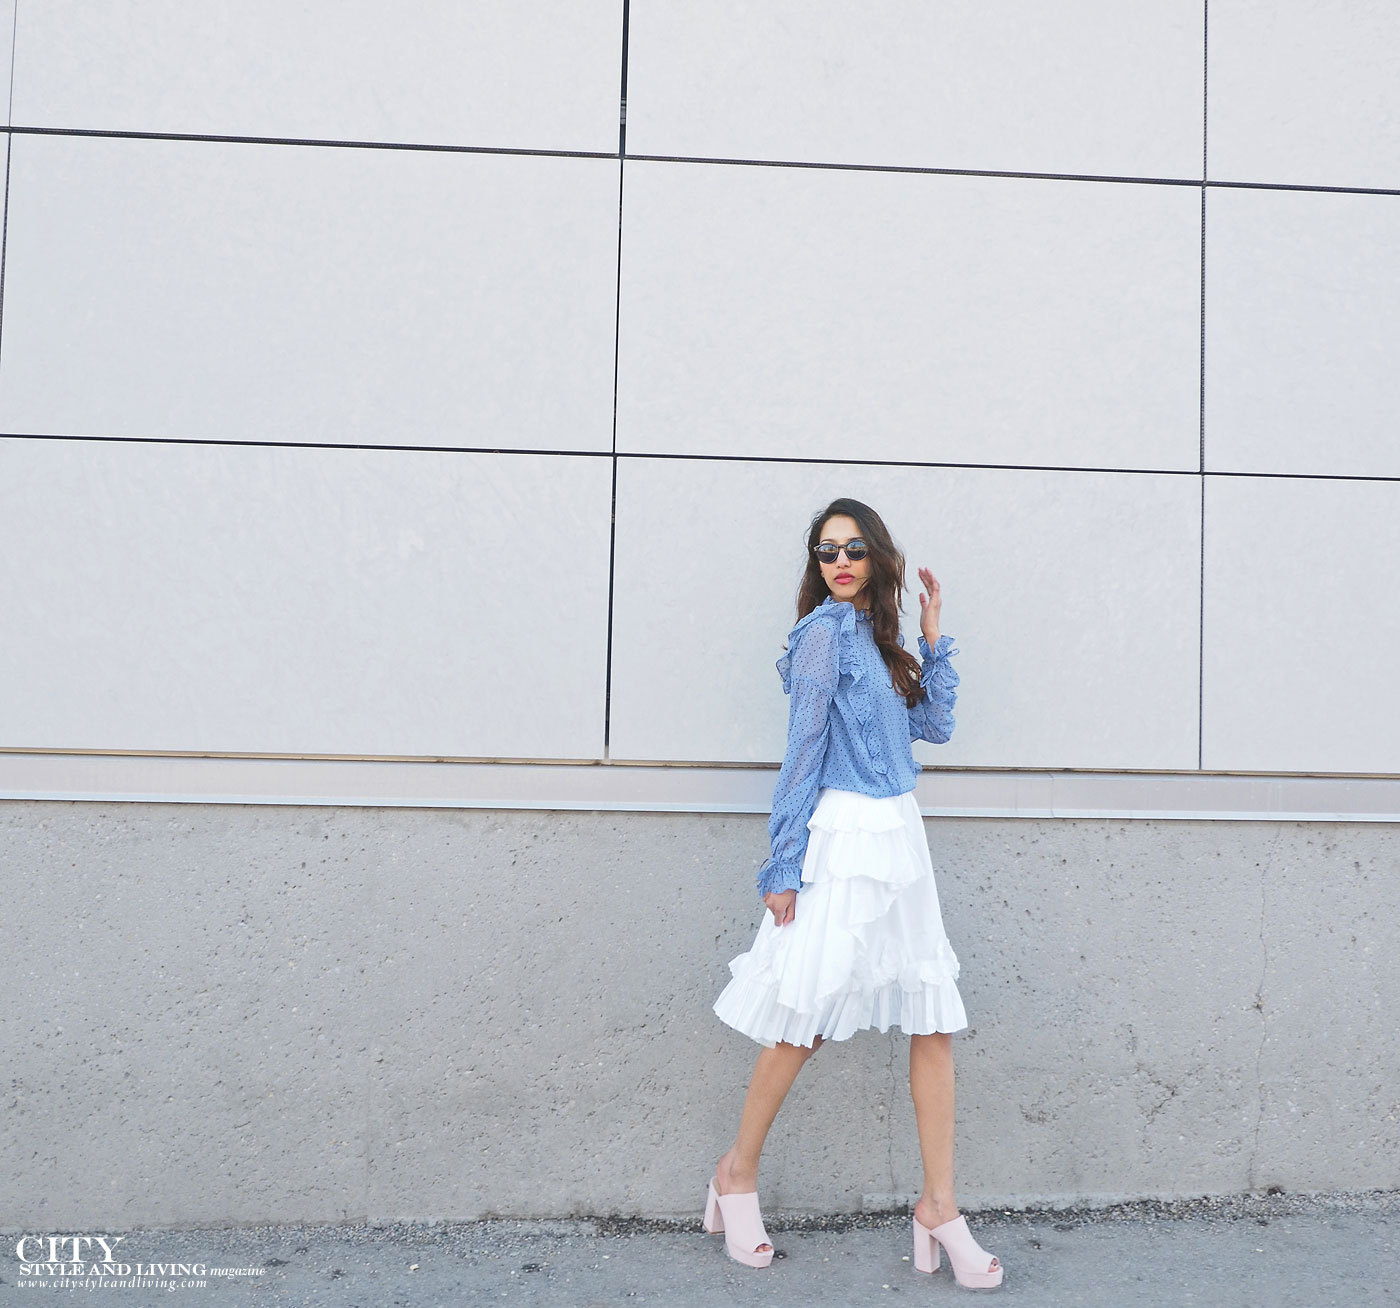 City style and living magazine The Editors Notebook style fashion blogger Shivana Maharaj how to wear frills for spring 2017 walking calgary